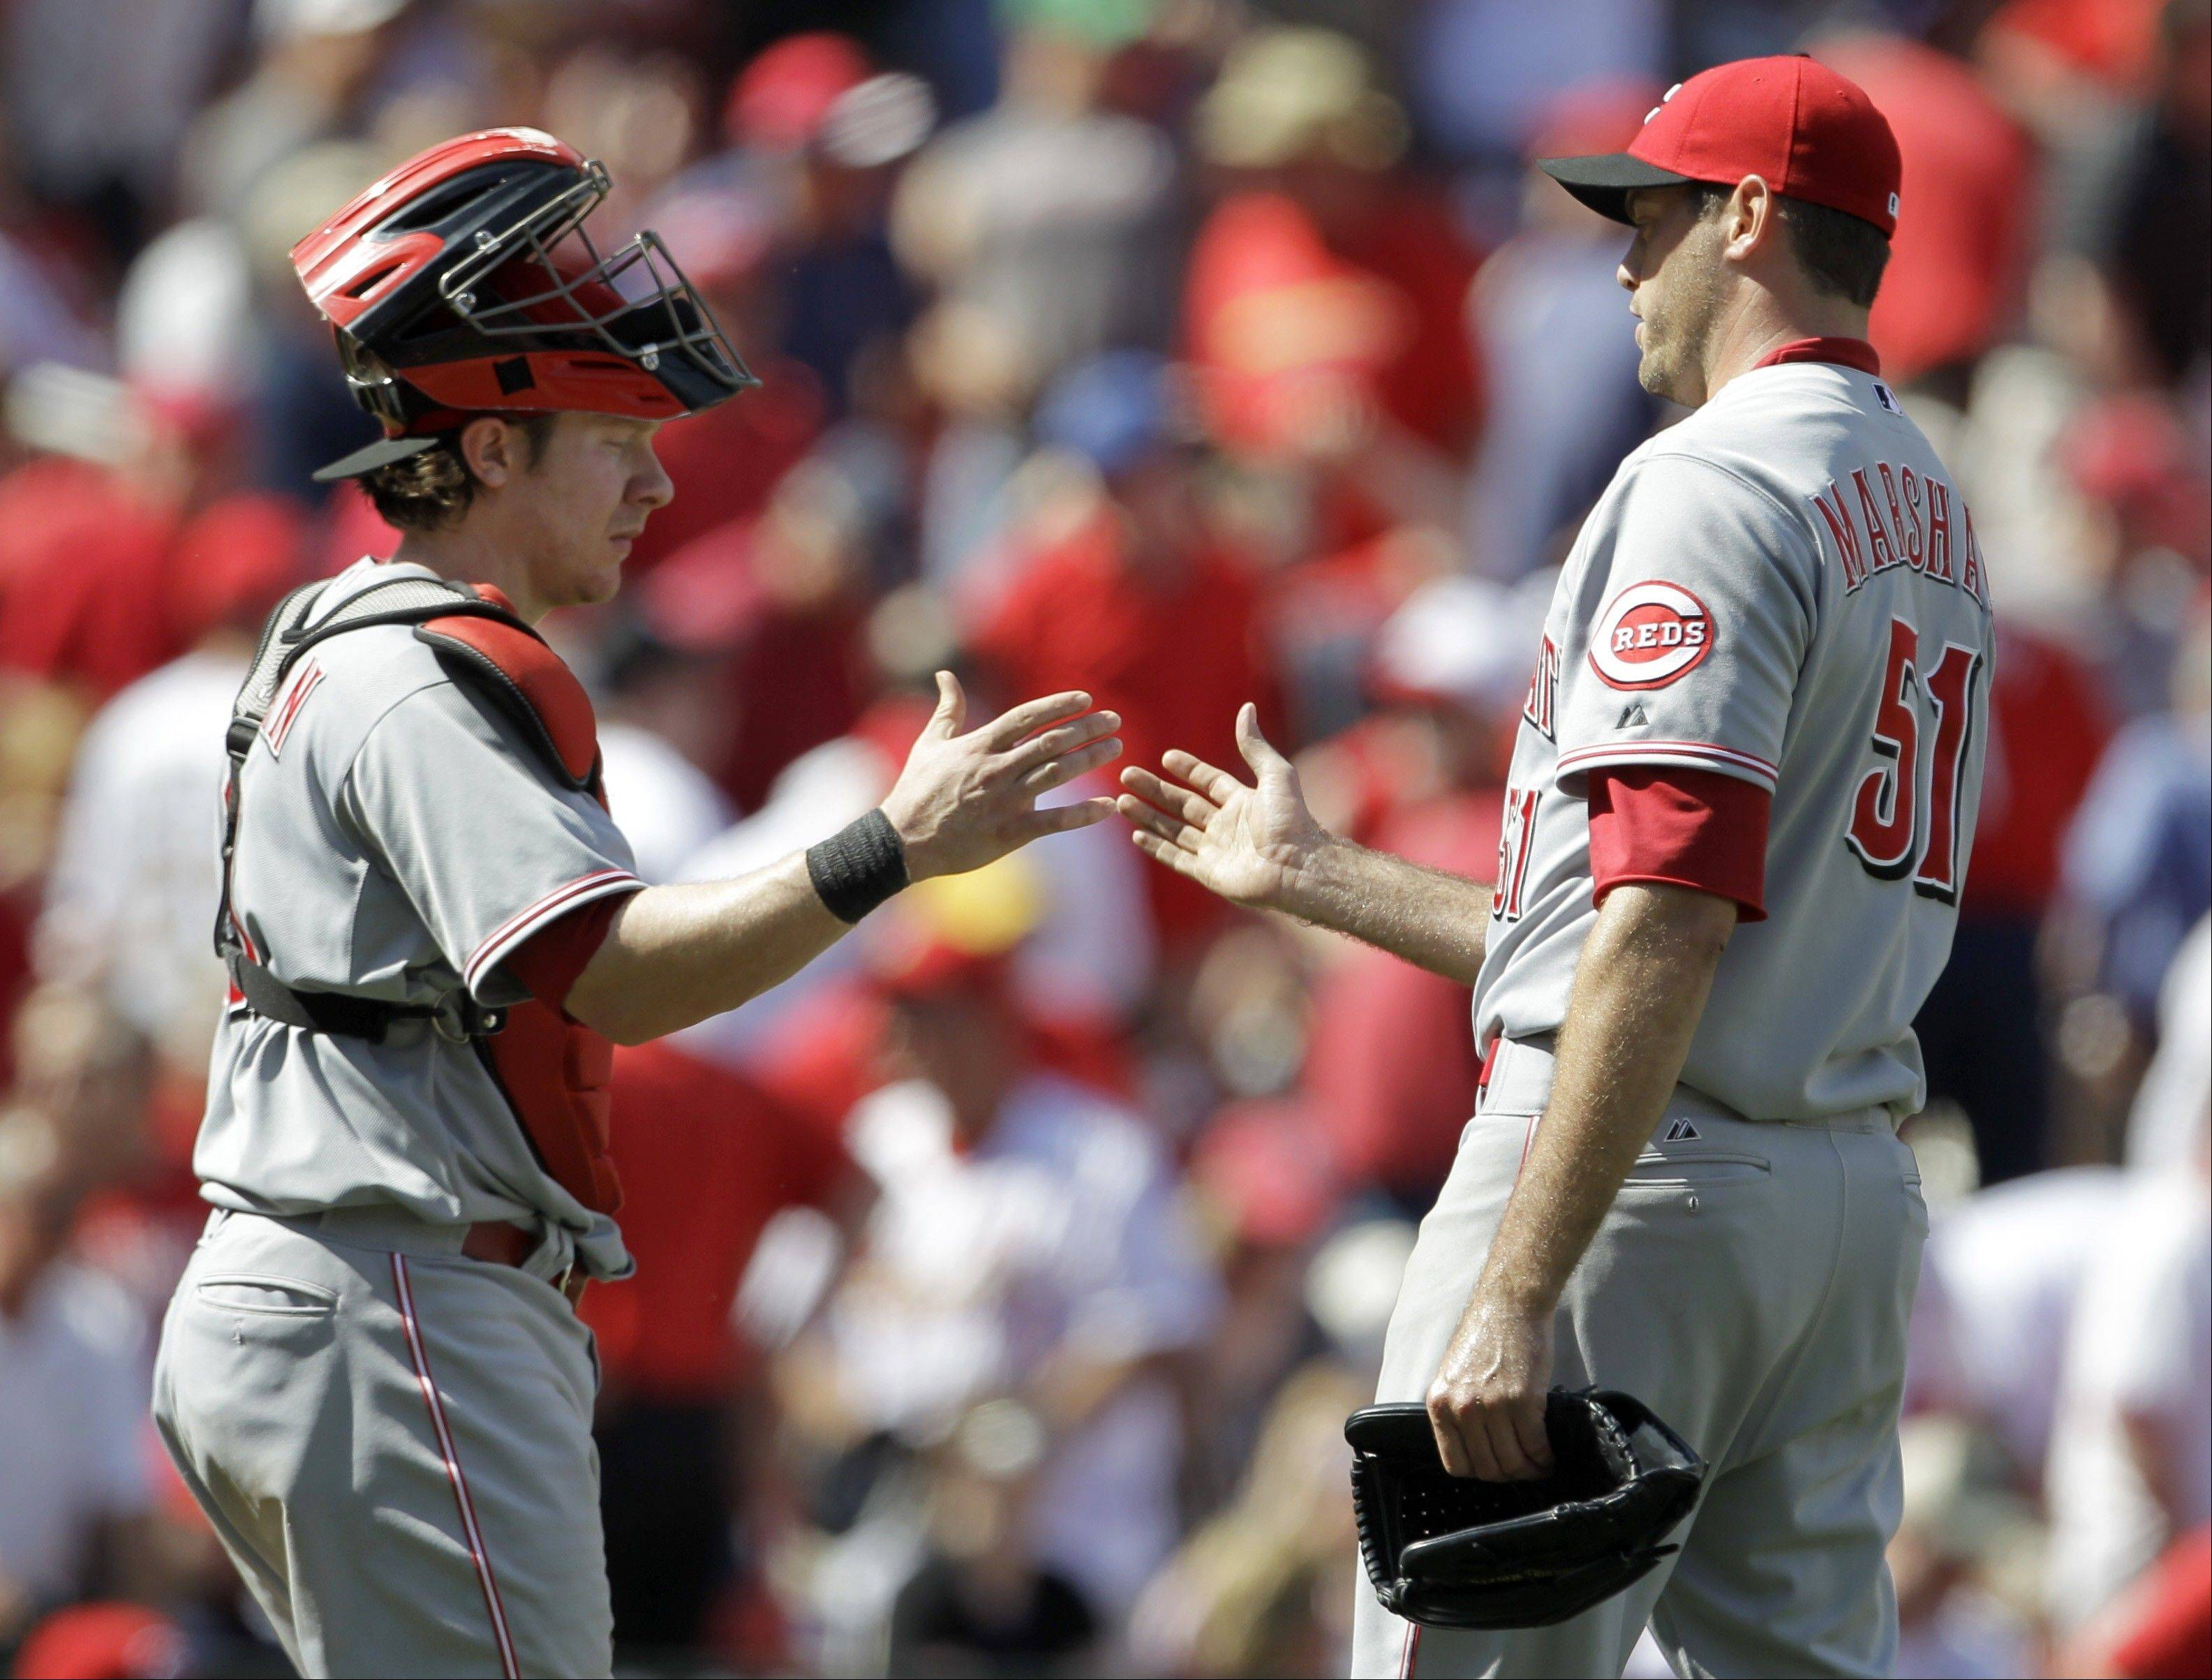 Cincinnati Reds catcher Ryan Hanigan, left, and relief pitcher Sean Marshall celebrate after their 6-3 victory over the St. Louis Cardinals on Thursday, April 19, 2012. Because of injuries, Marshall is Cincinnati's closer for now.